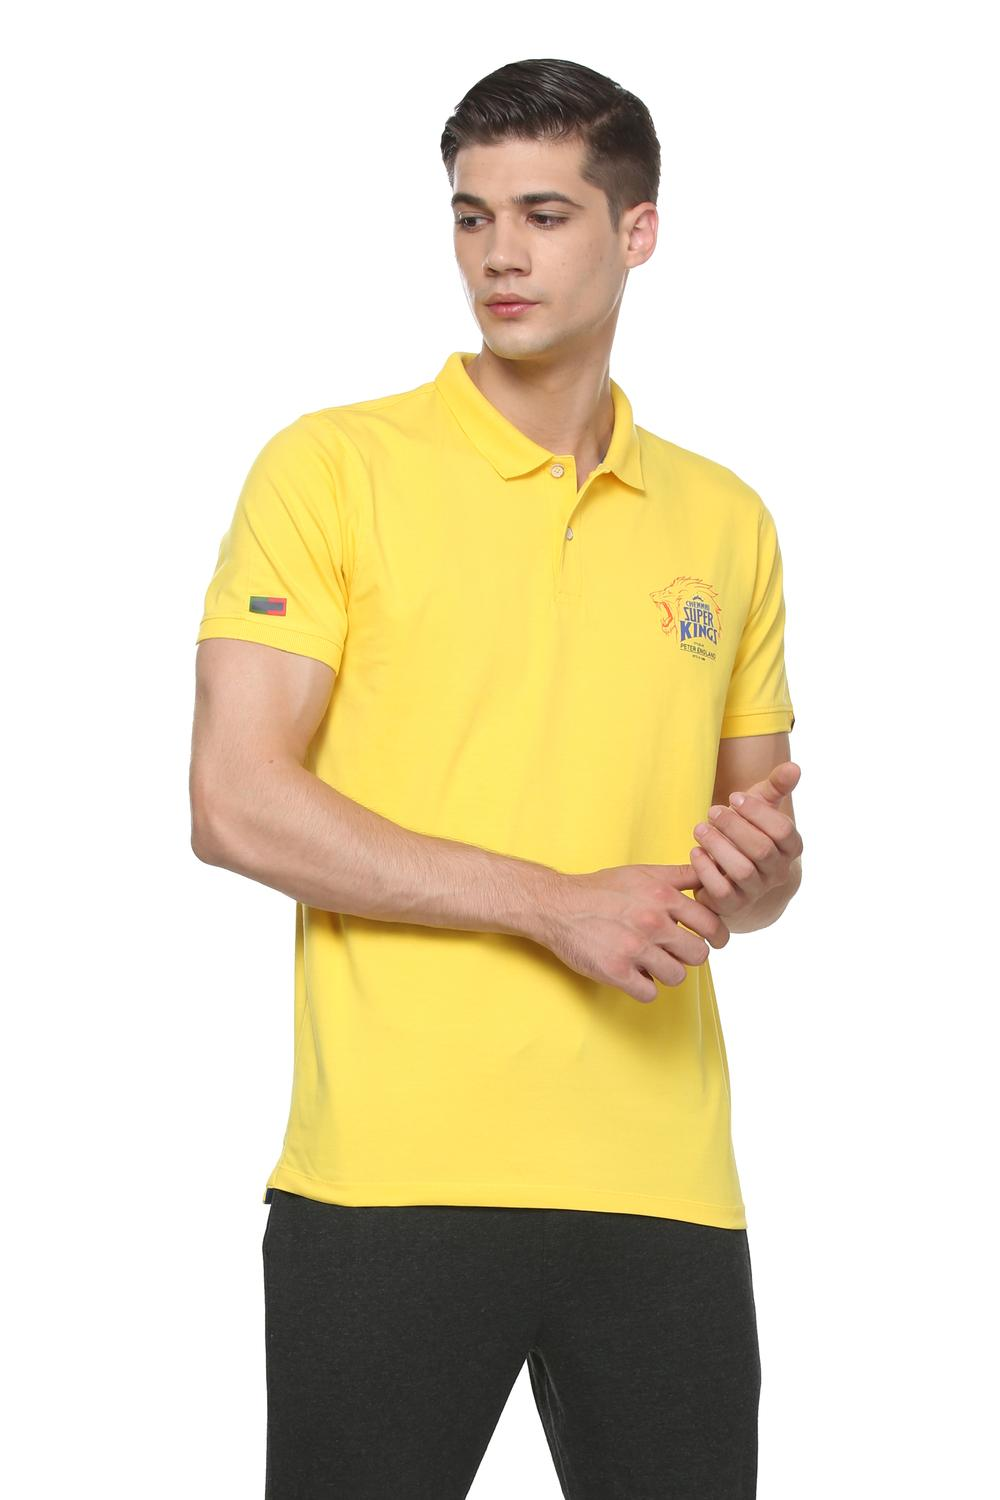 f47cfc2ee57aa2 Peter England Casuals T-Shirts, Peter England CSK Yellow Polo T Shirt for Men  at Peterengland.com